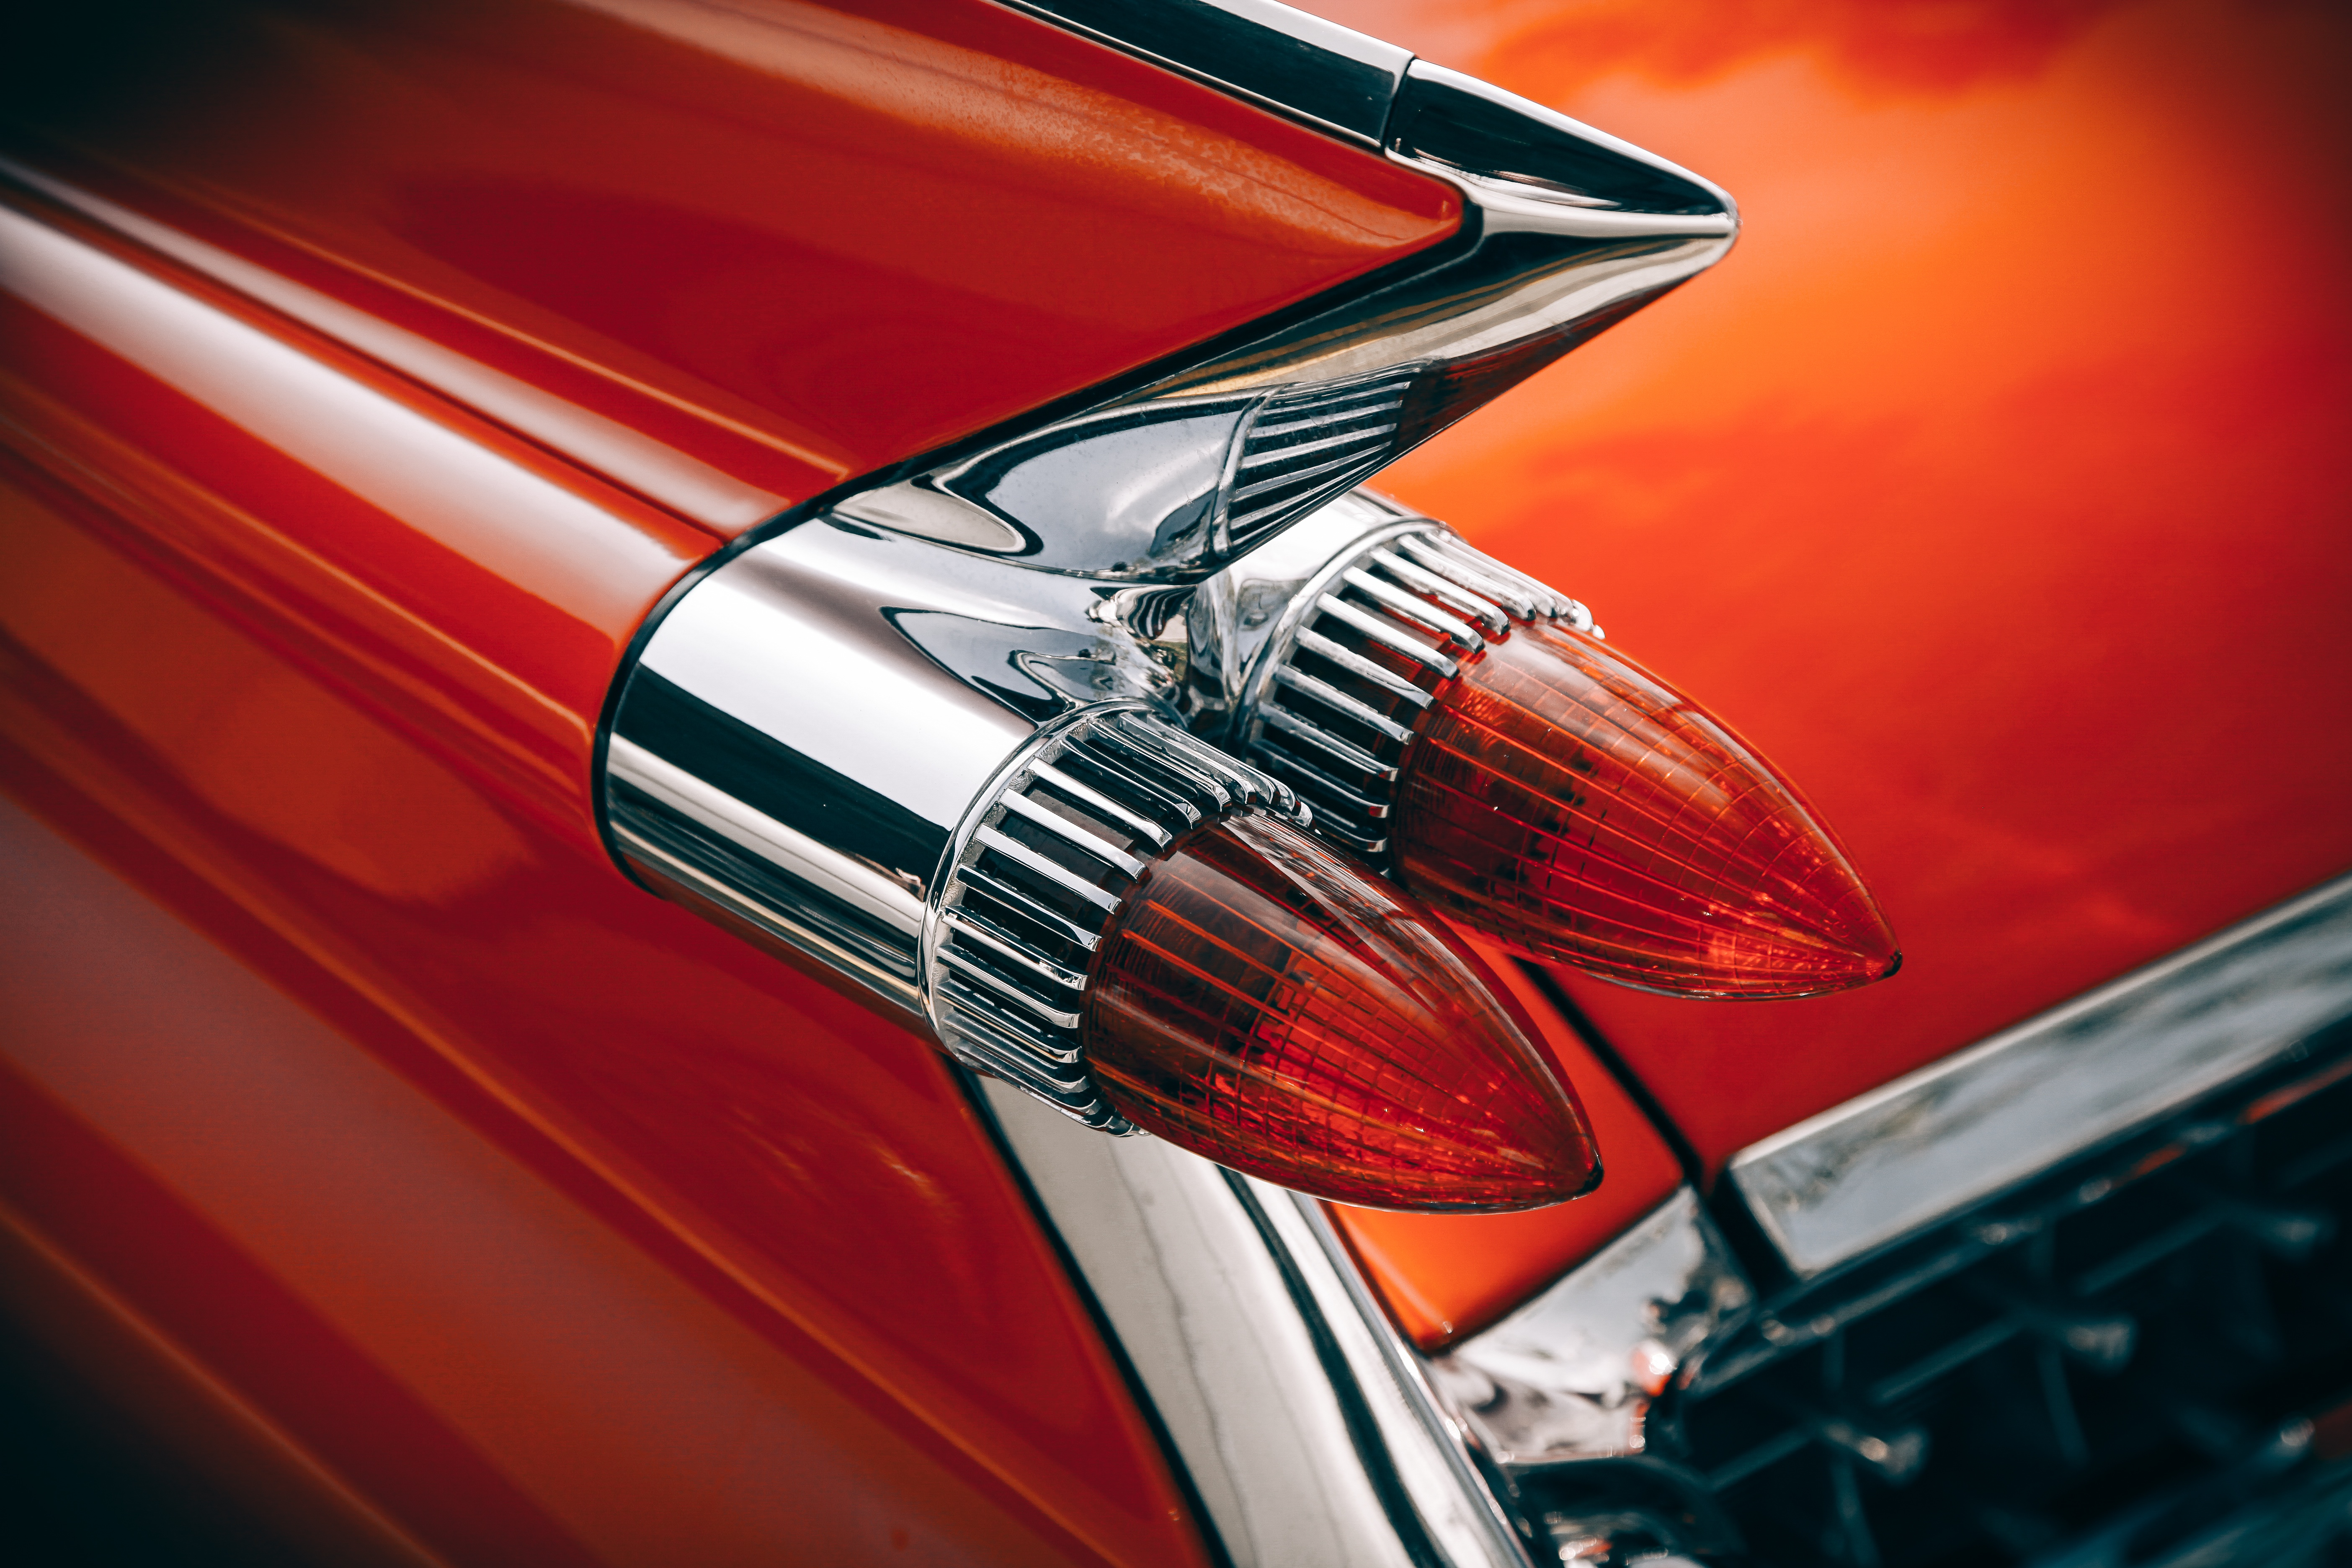 Inspiration for blog posts: Iconic automobile tail fins late 50s-early 60s cars